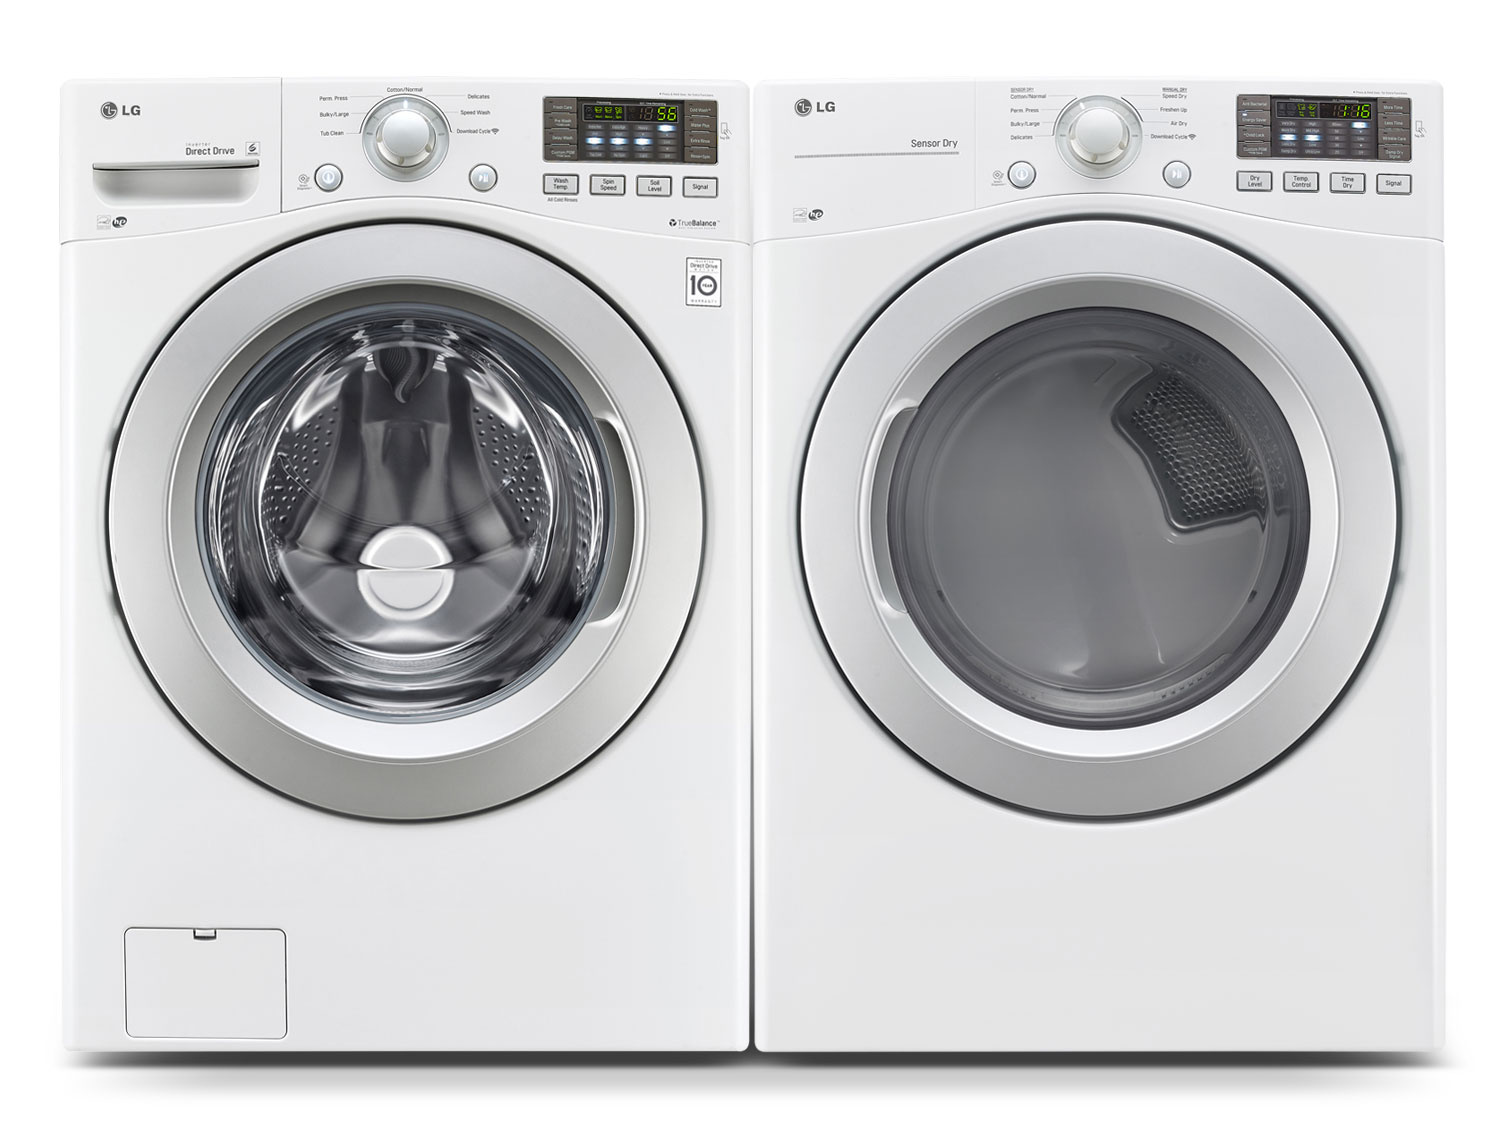 LG 5.2 Cu. Ft. Front-Load Washer and 7.4 Cu. Ft. Gas Dryer – White